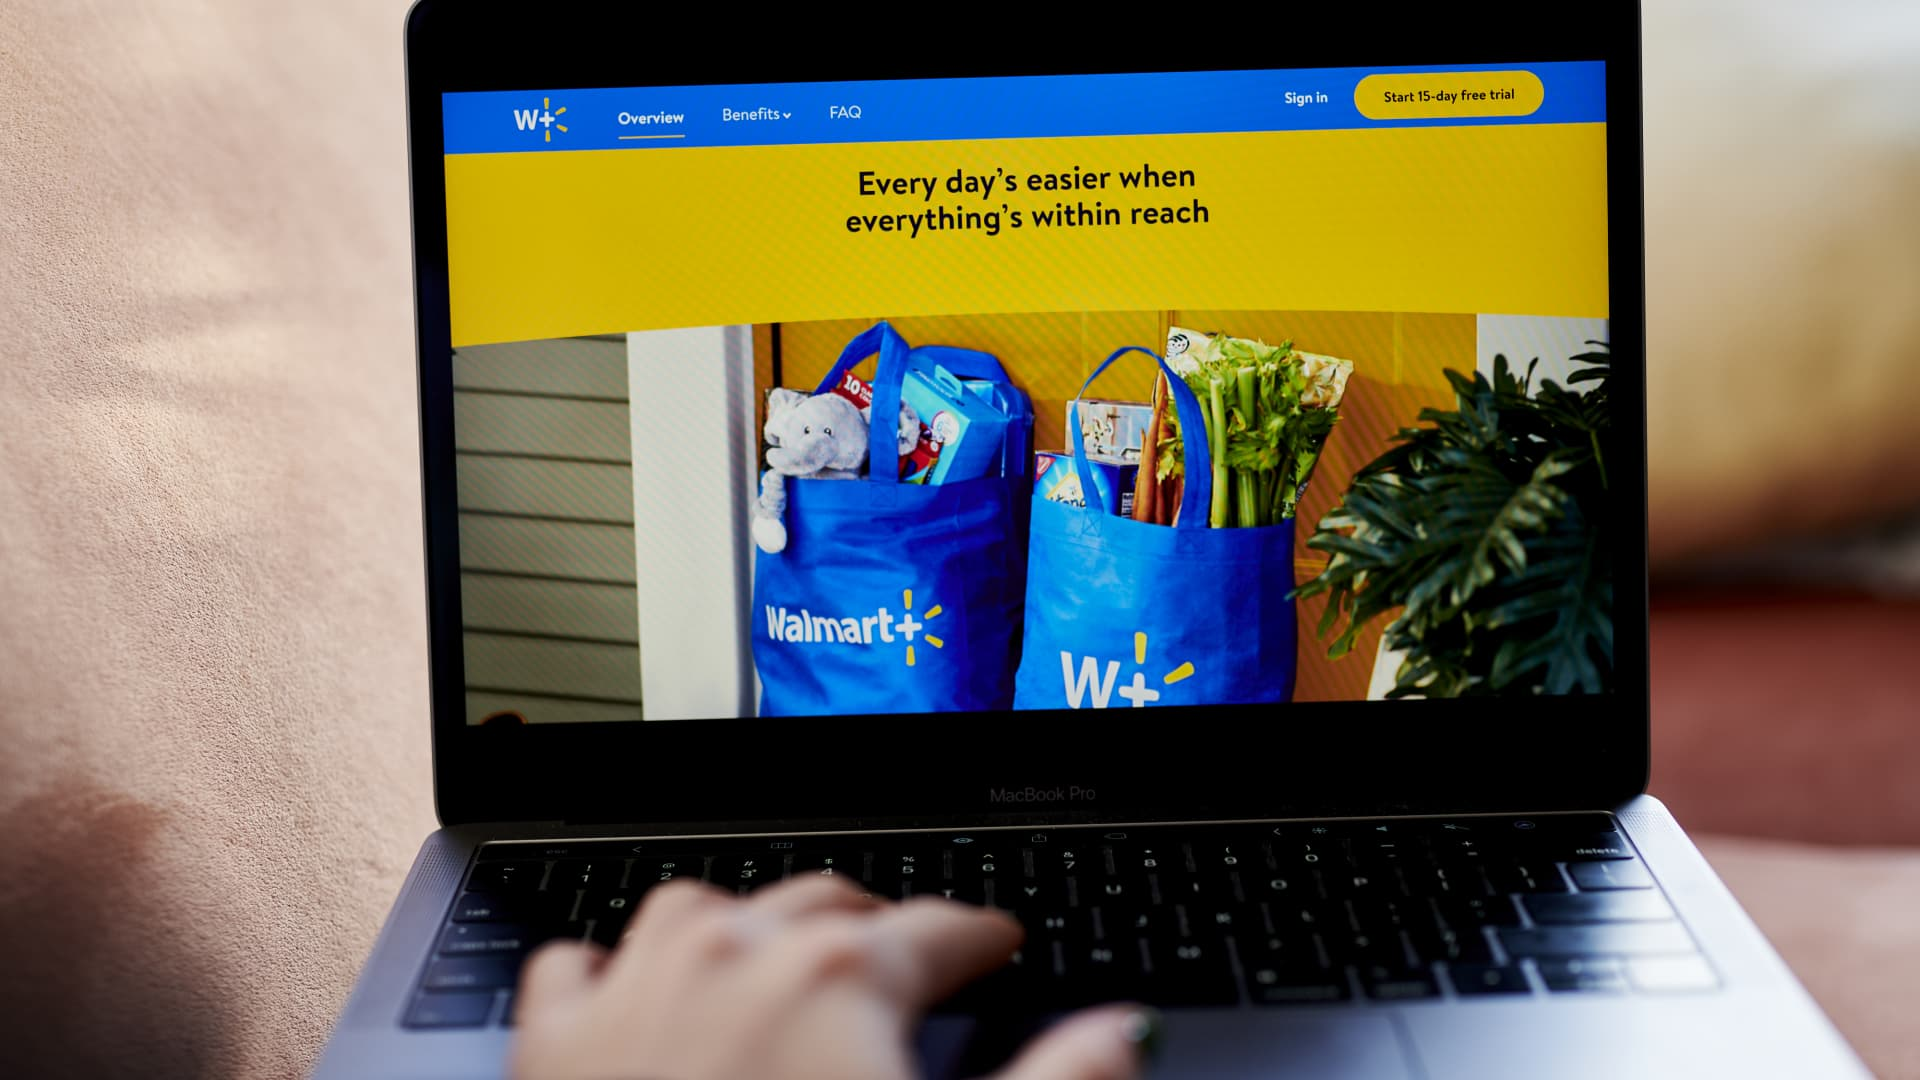 The Walmart+ home screen on a laptop computer arranged in the Brooklyn Borough of New York, U.S., on Wednesday, Nov. 18, 2020.